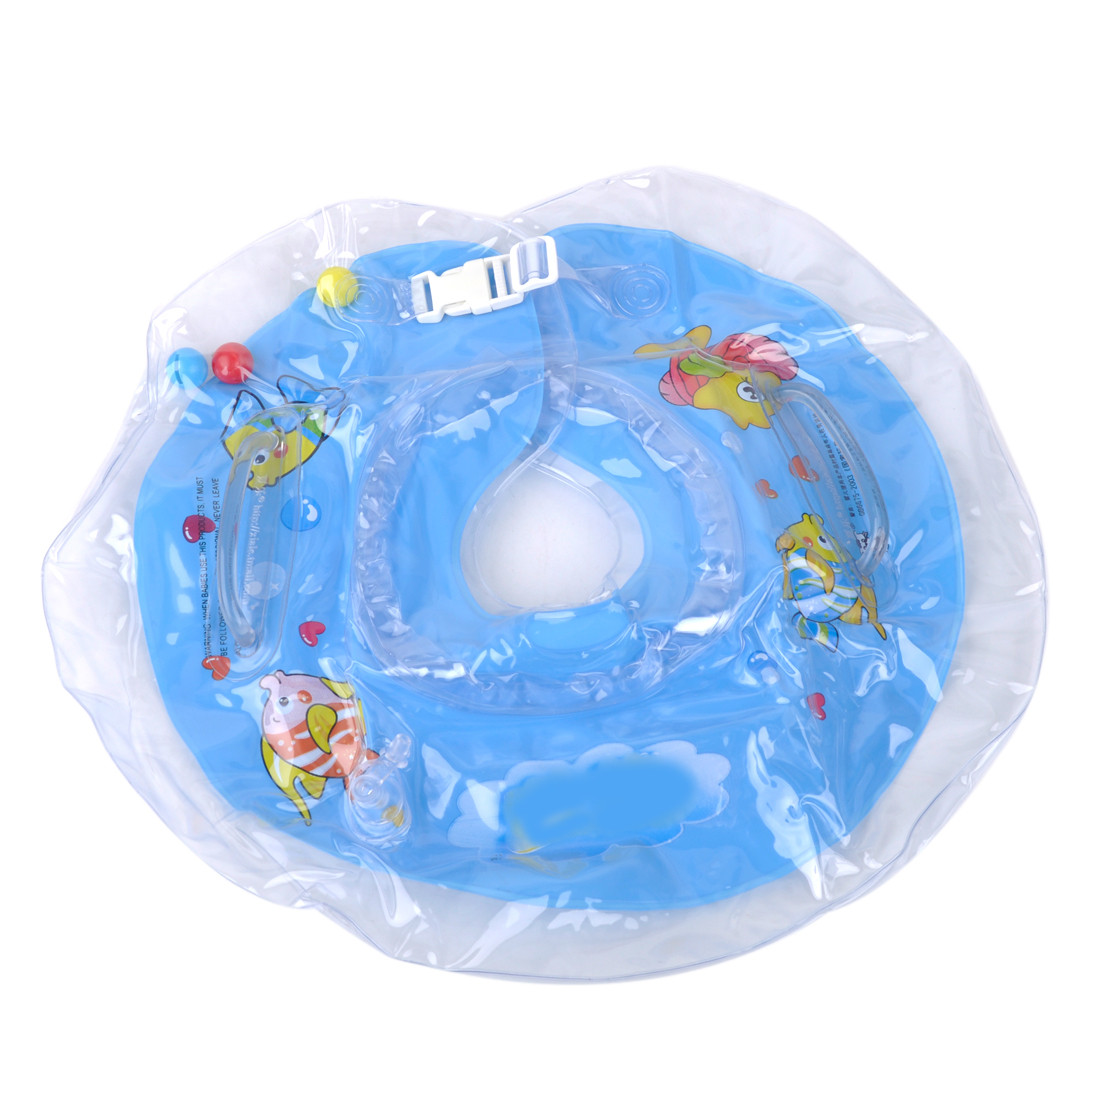 Product details of new inflatable floating swim ring kids children toy - Inflatable Infant Baby Swimming Neck Circle Baby Float